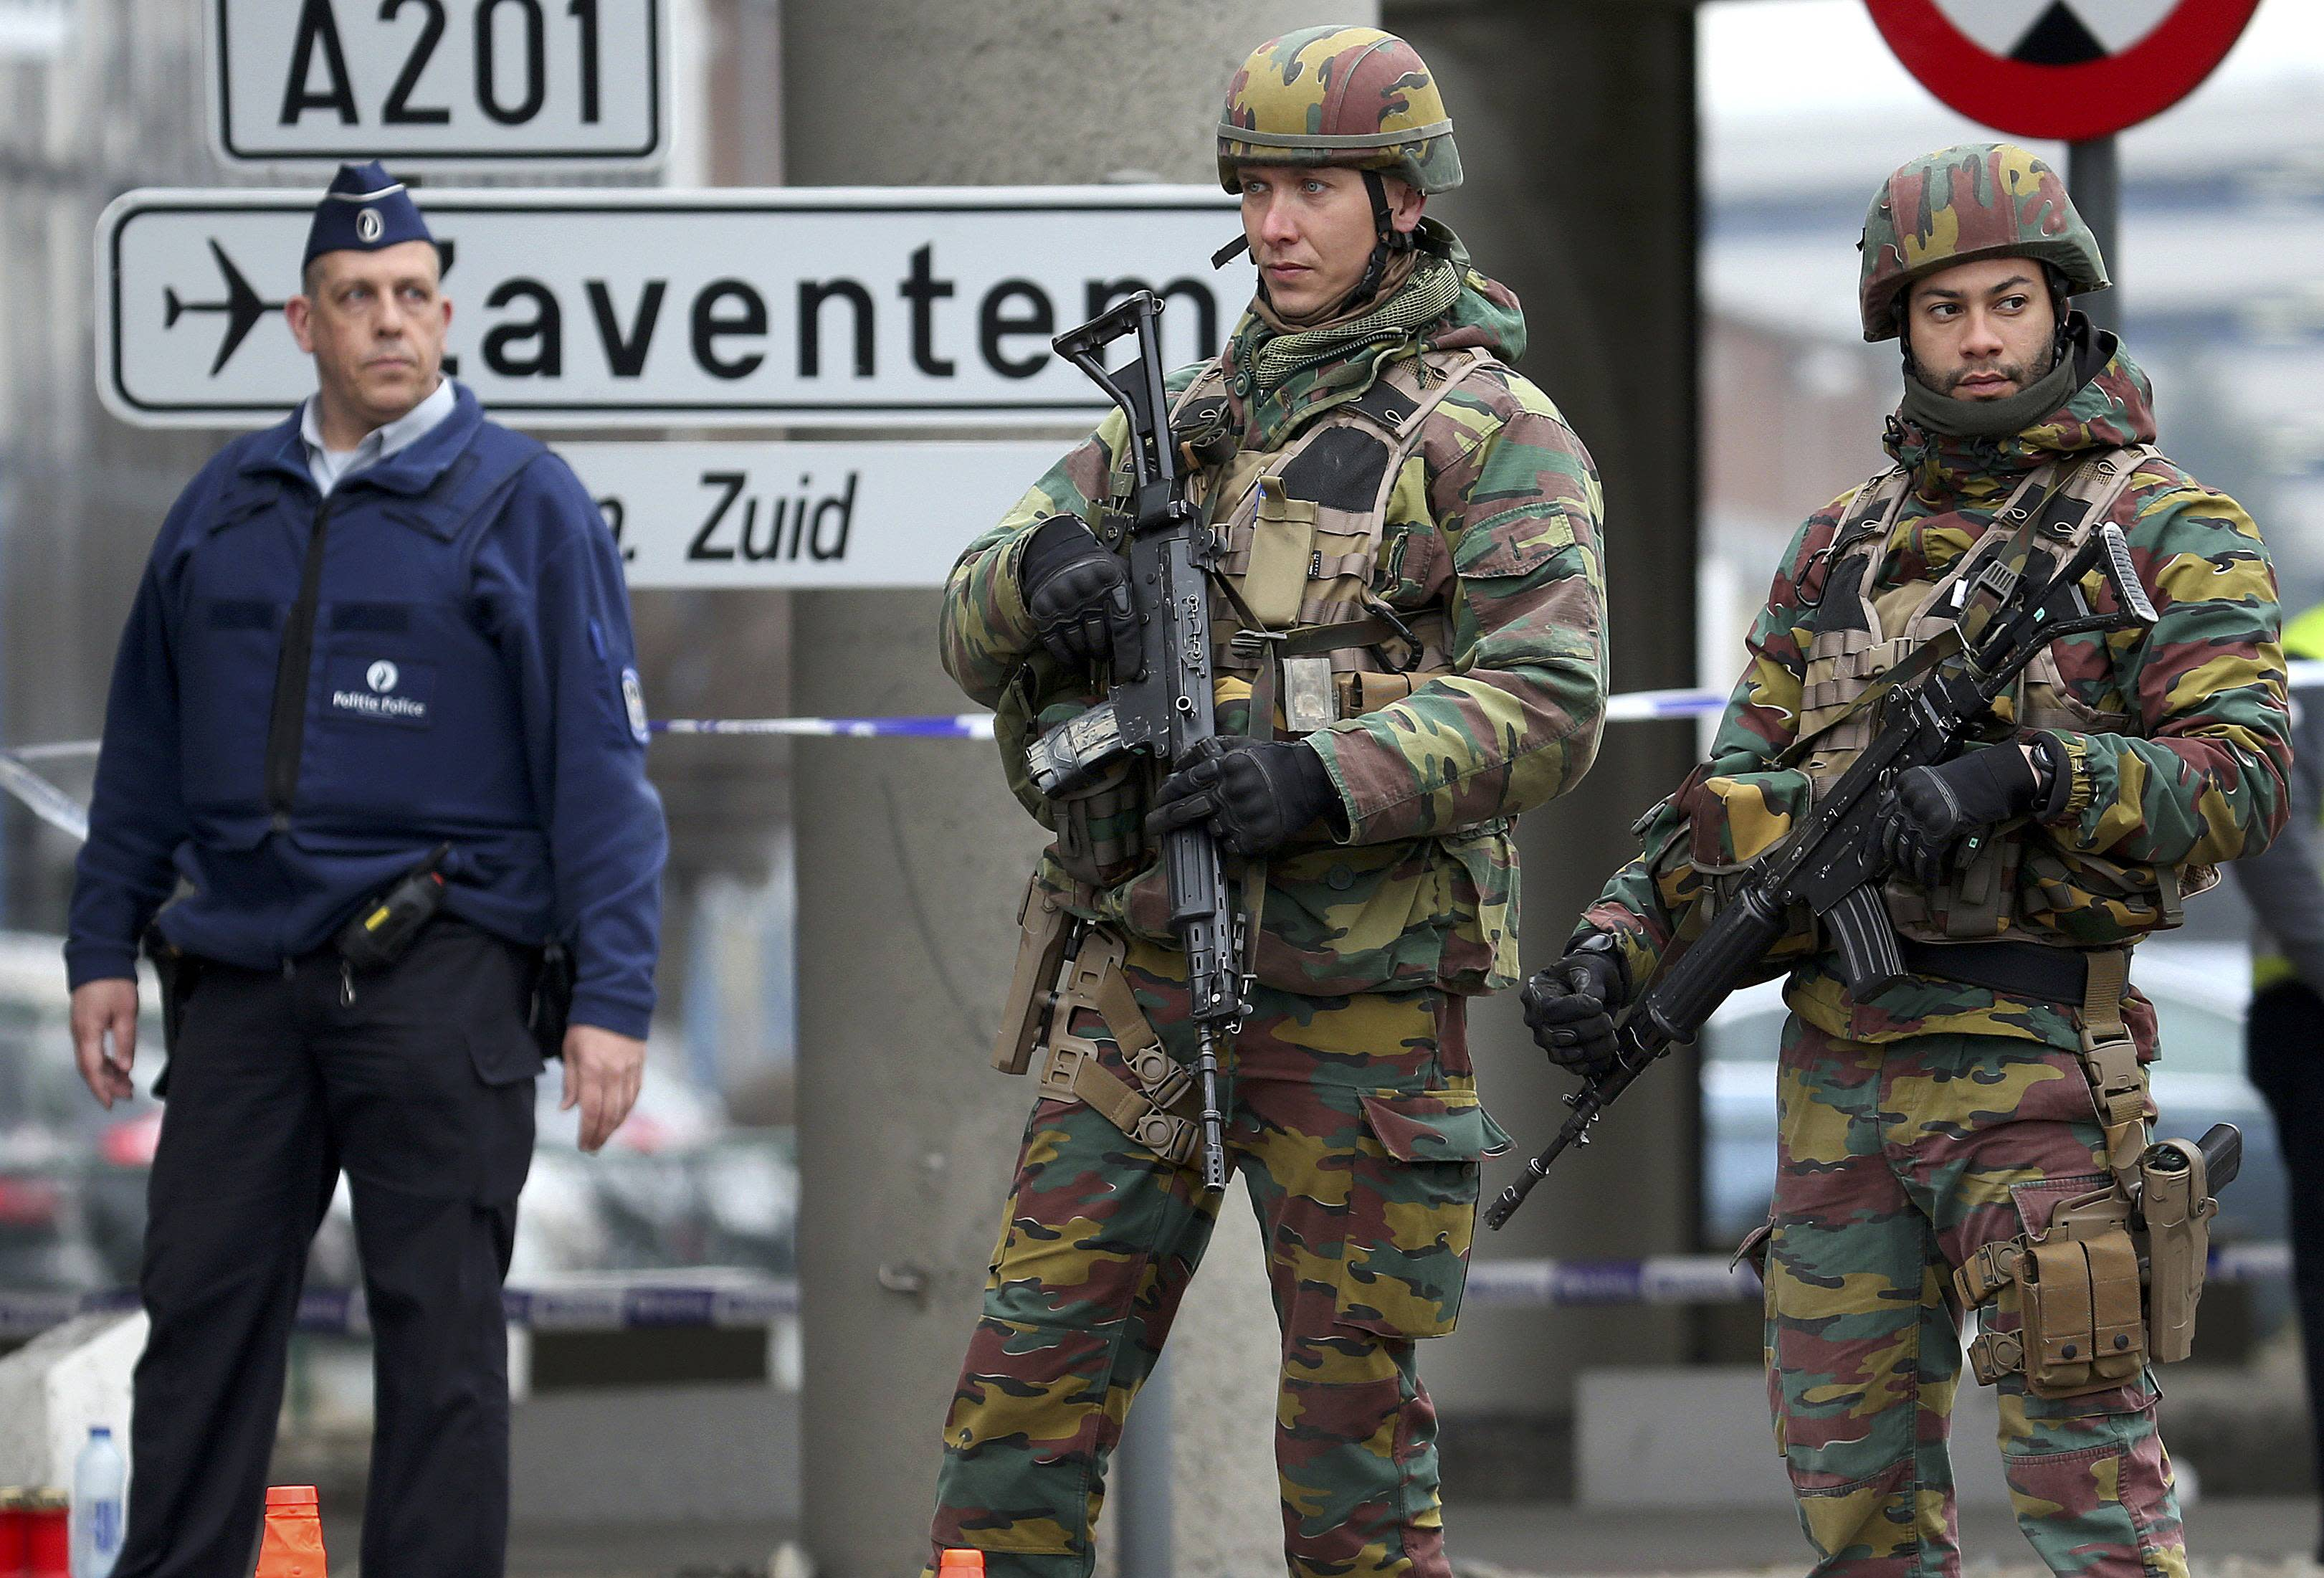 Belgian troops and police control a road leading to Zaventem airport following Tuesday's airport bombings in Brussels, Belgium, March 24, 2016. REUTERS/Charles Platiau